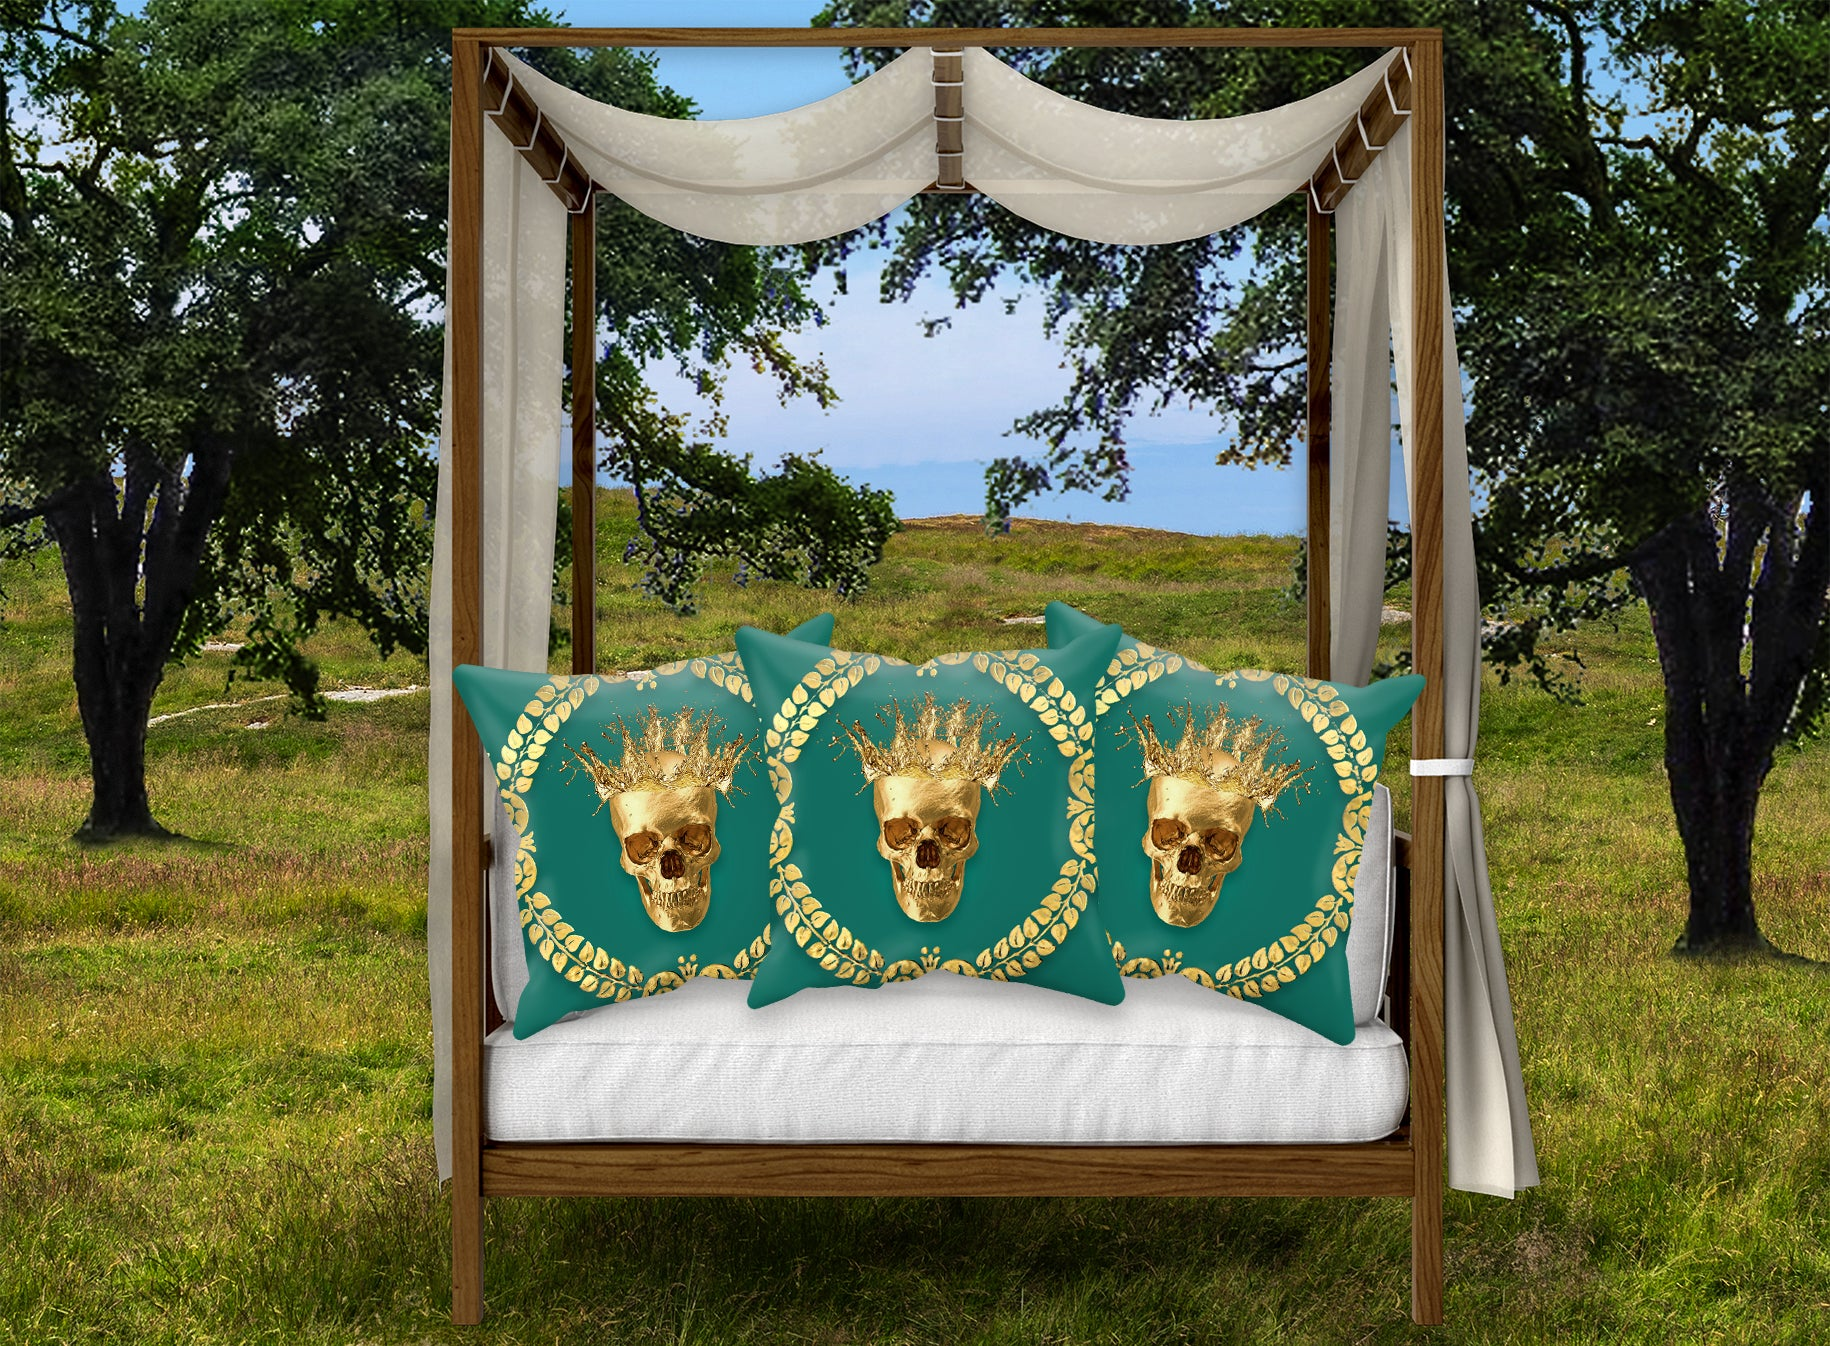 Satin and Suede Pillow Case-Cushion Cover-Gold SKULL-GOLD WREATH- Color JADE TEAL, BLUE GREEN